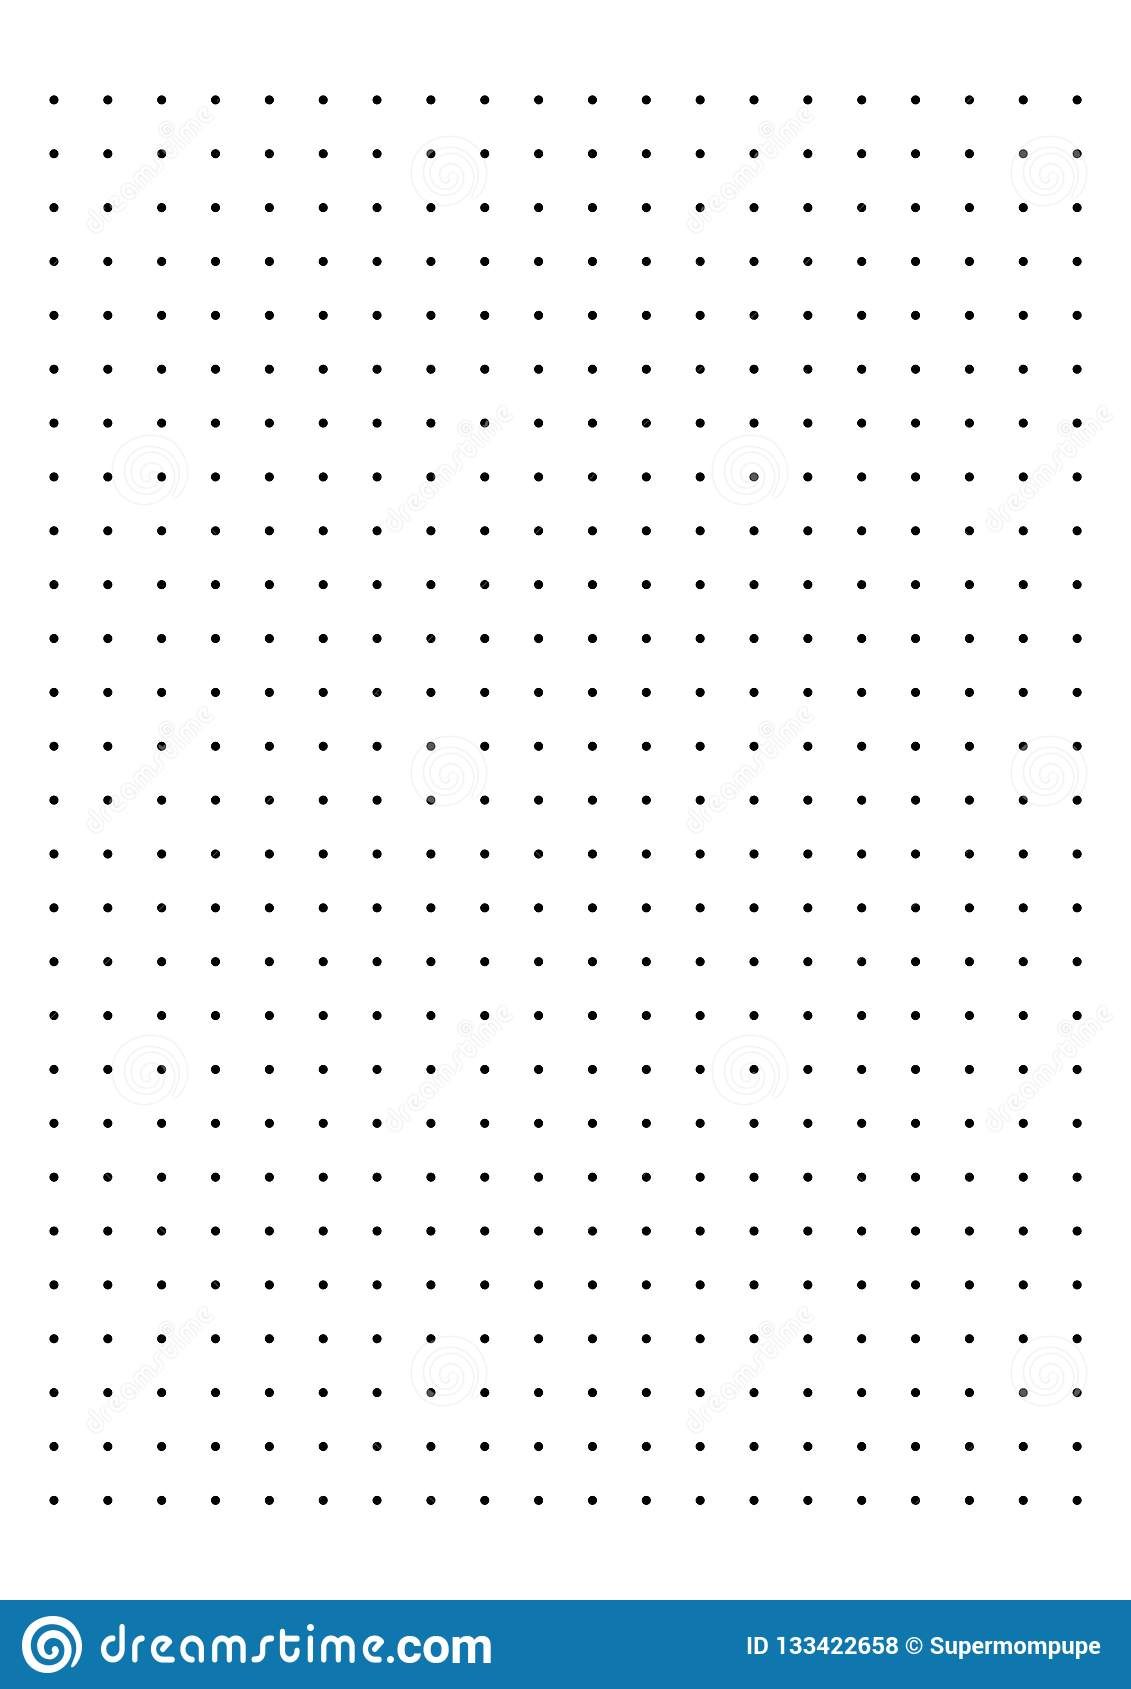 photo regarding Dot Grid Printable referred to as Dot Grid Paper Graph Paper 1 Cm Upon White Heritage Vector